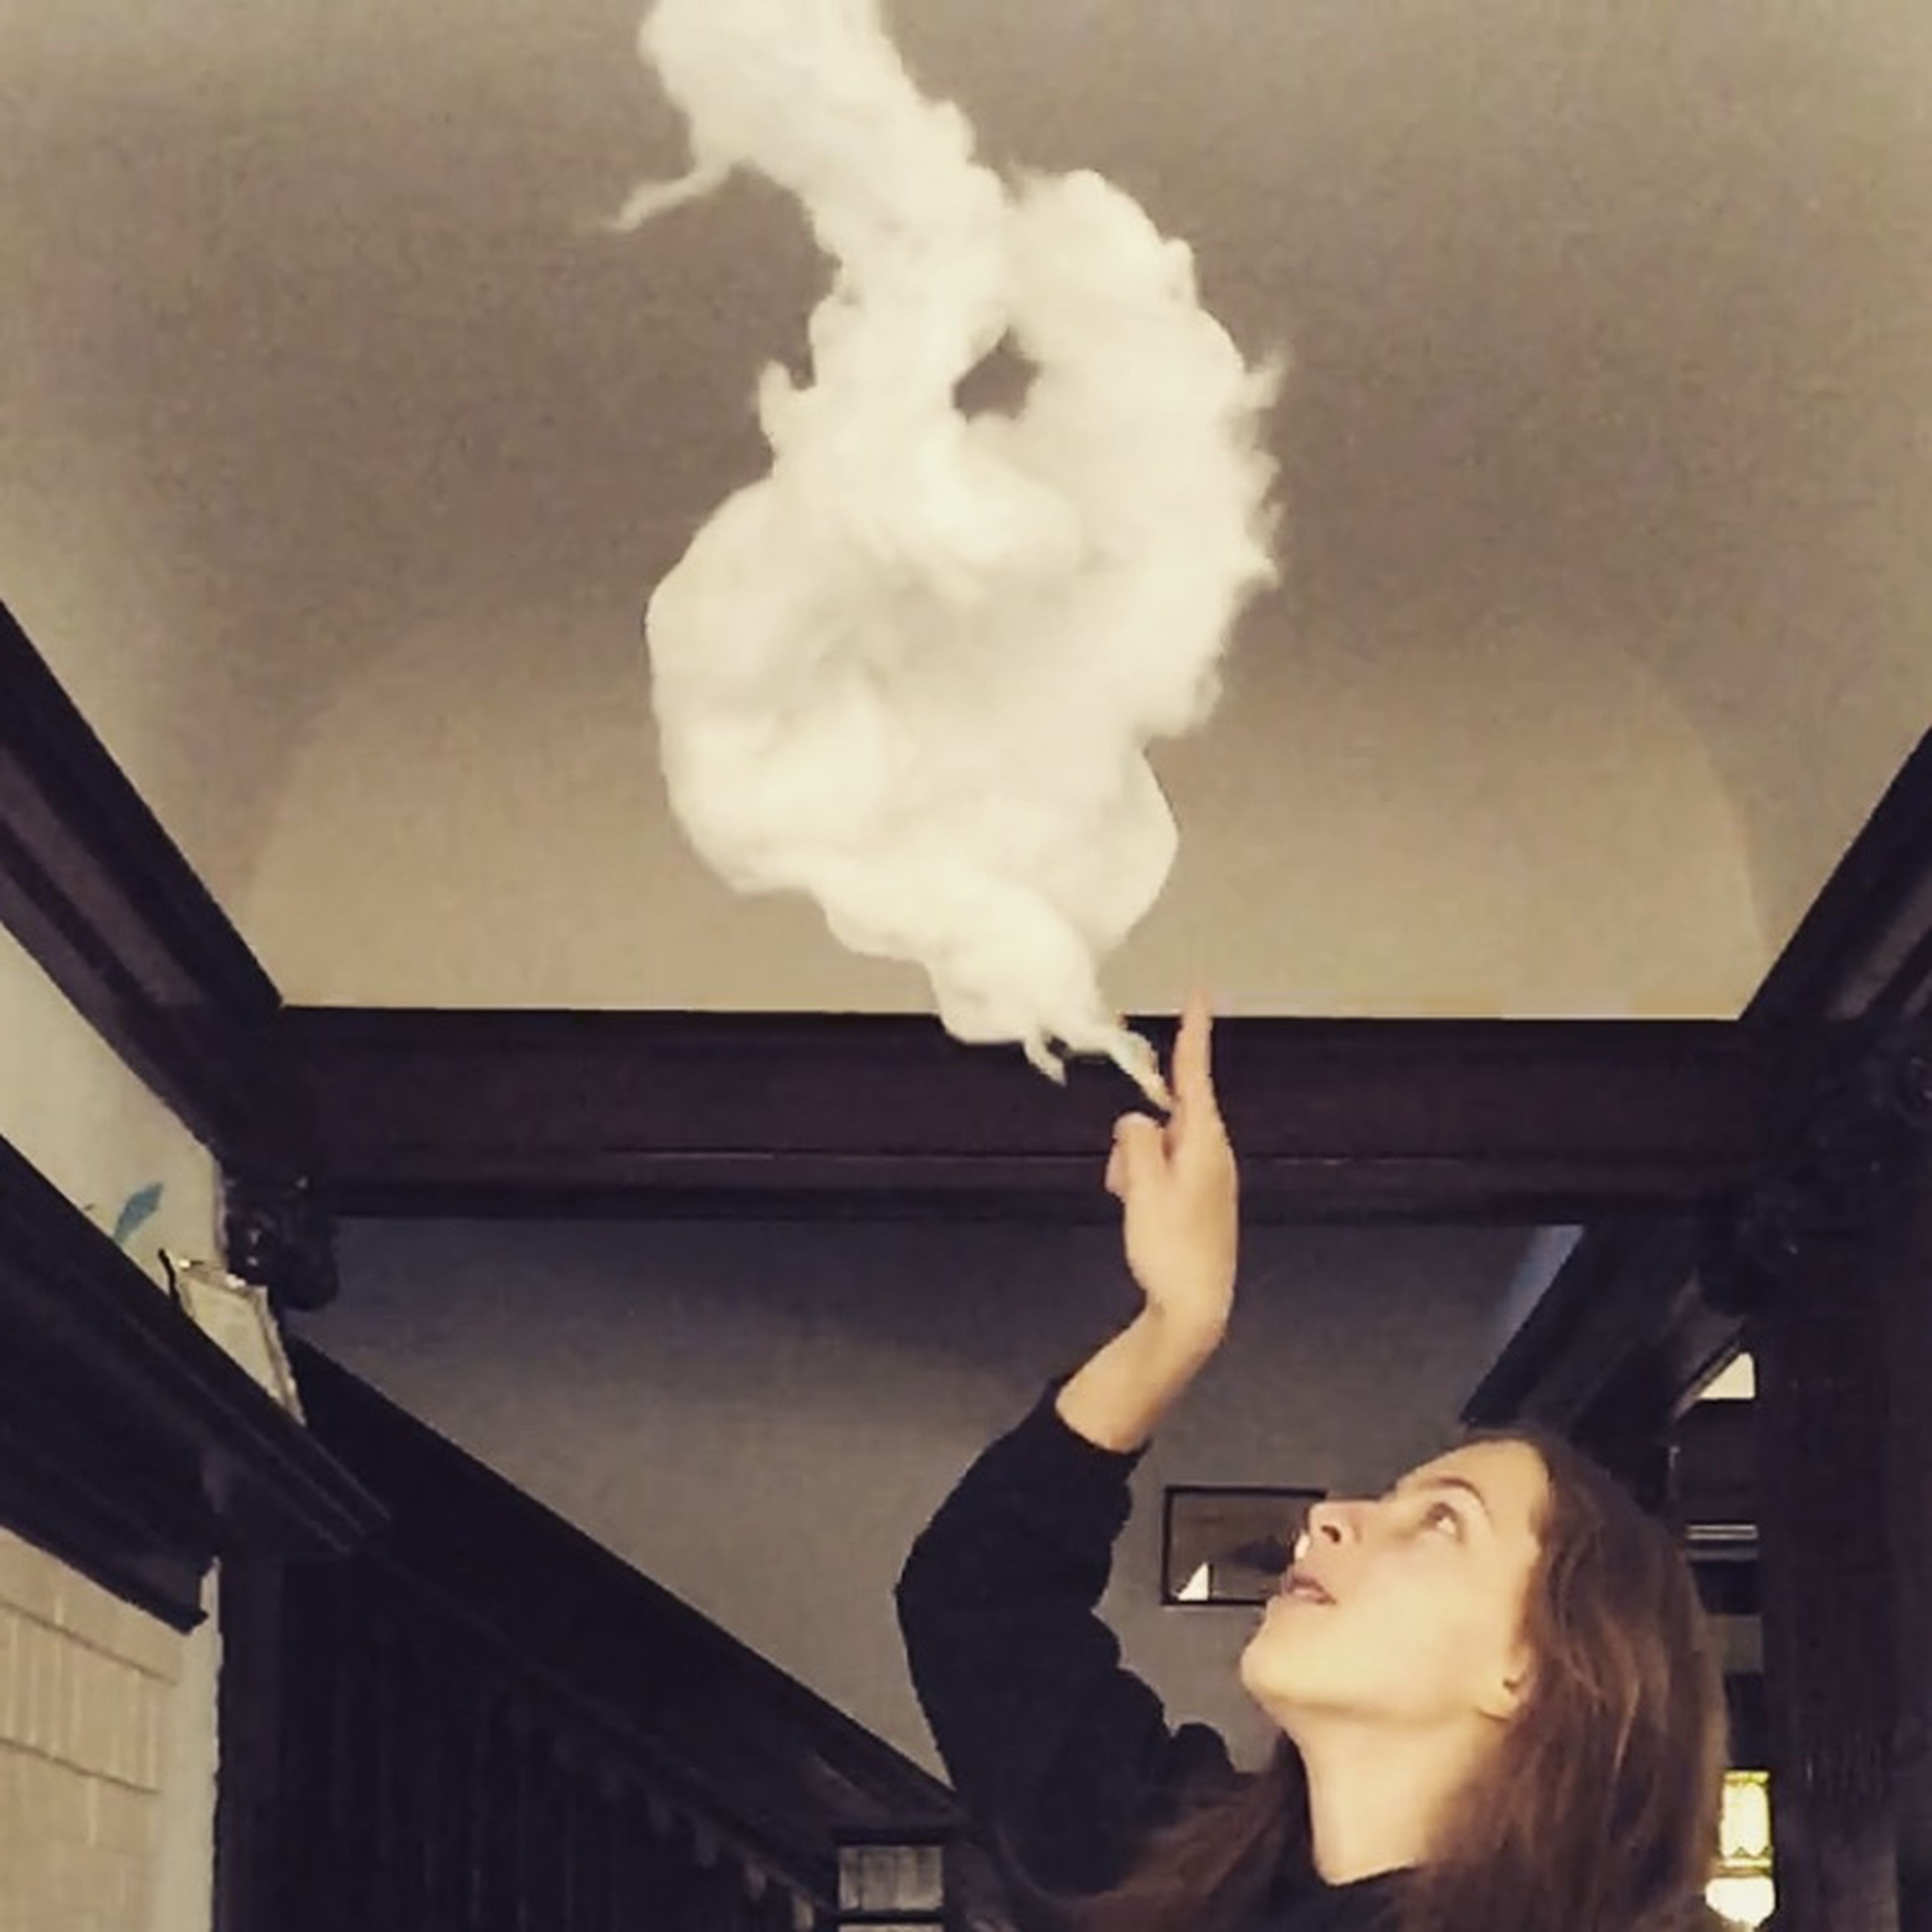 lifestyles, holding, indoors, young adult, leisure activity, person, casual clothing, architecture, young women, waist up, built structure, headshot, three quarter length, low angle view, smoke - physical structure, front view, human representation, standing